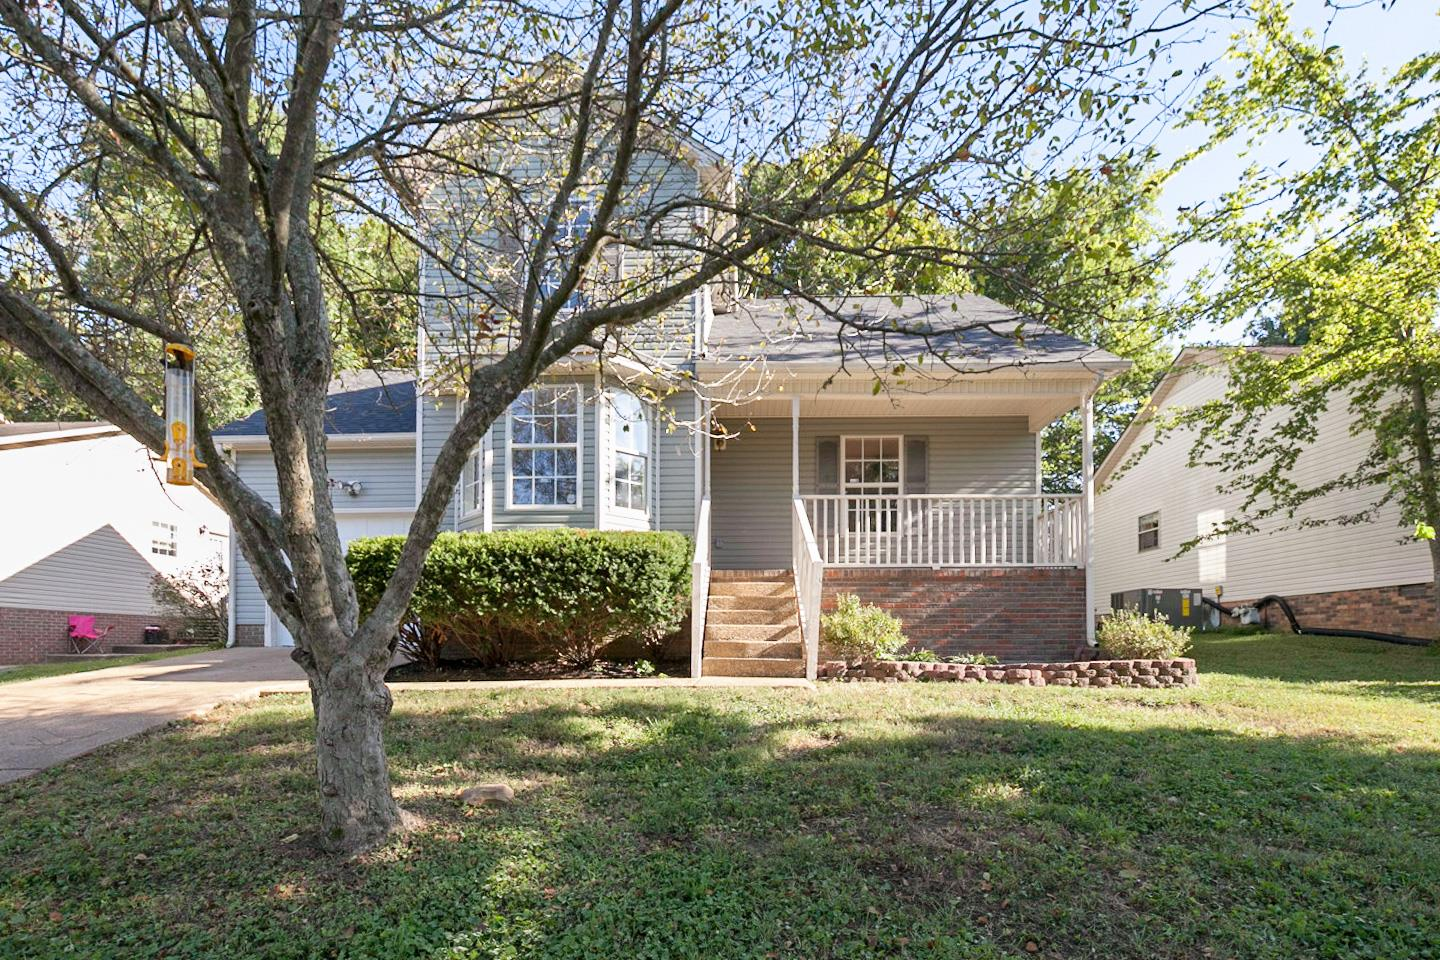 213 Valley Dr 38401 - One of Columbia Homes for Sale